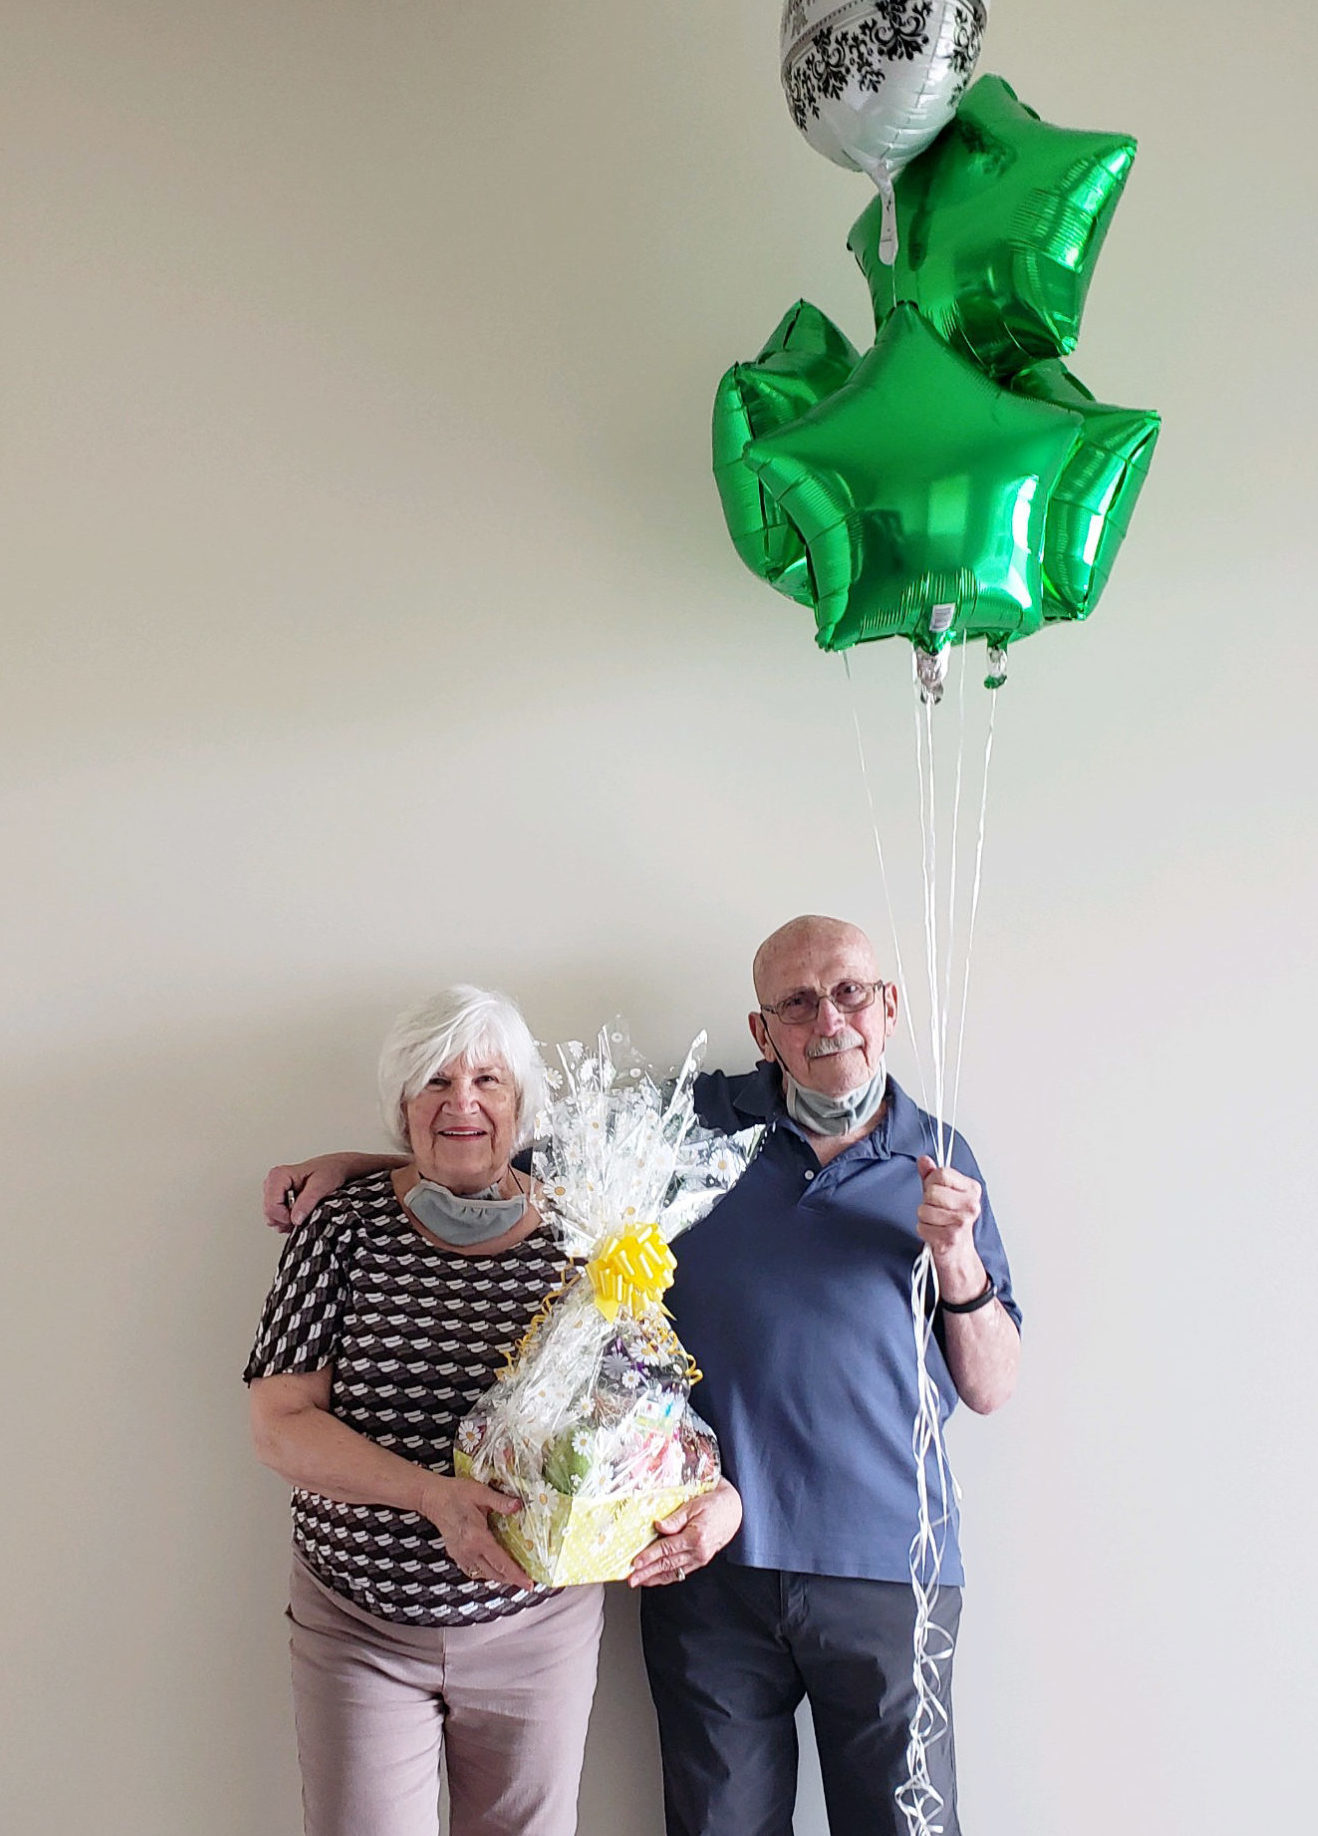 shevchick-with-basket-and-balloons-rtch-scaled-e1592256073587-1440573